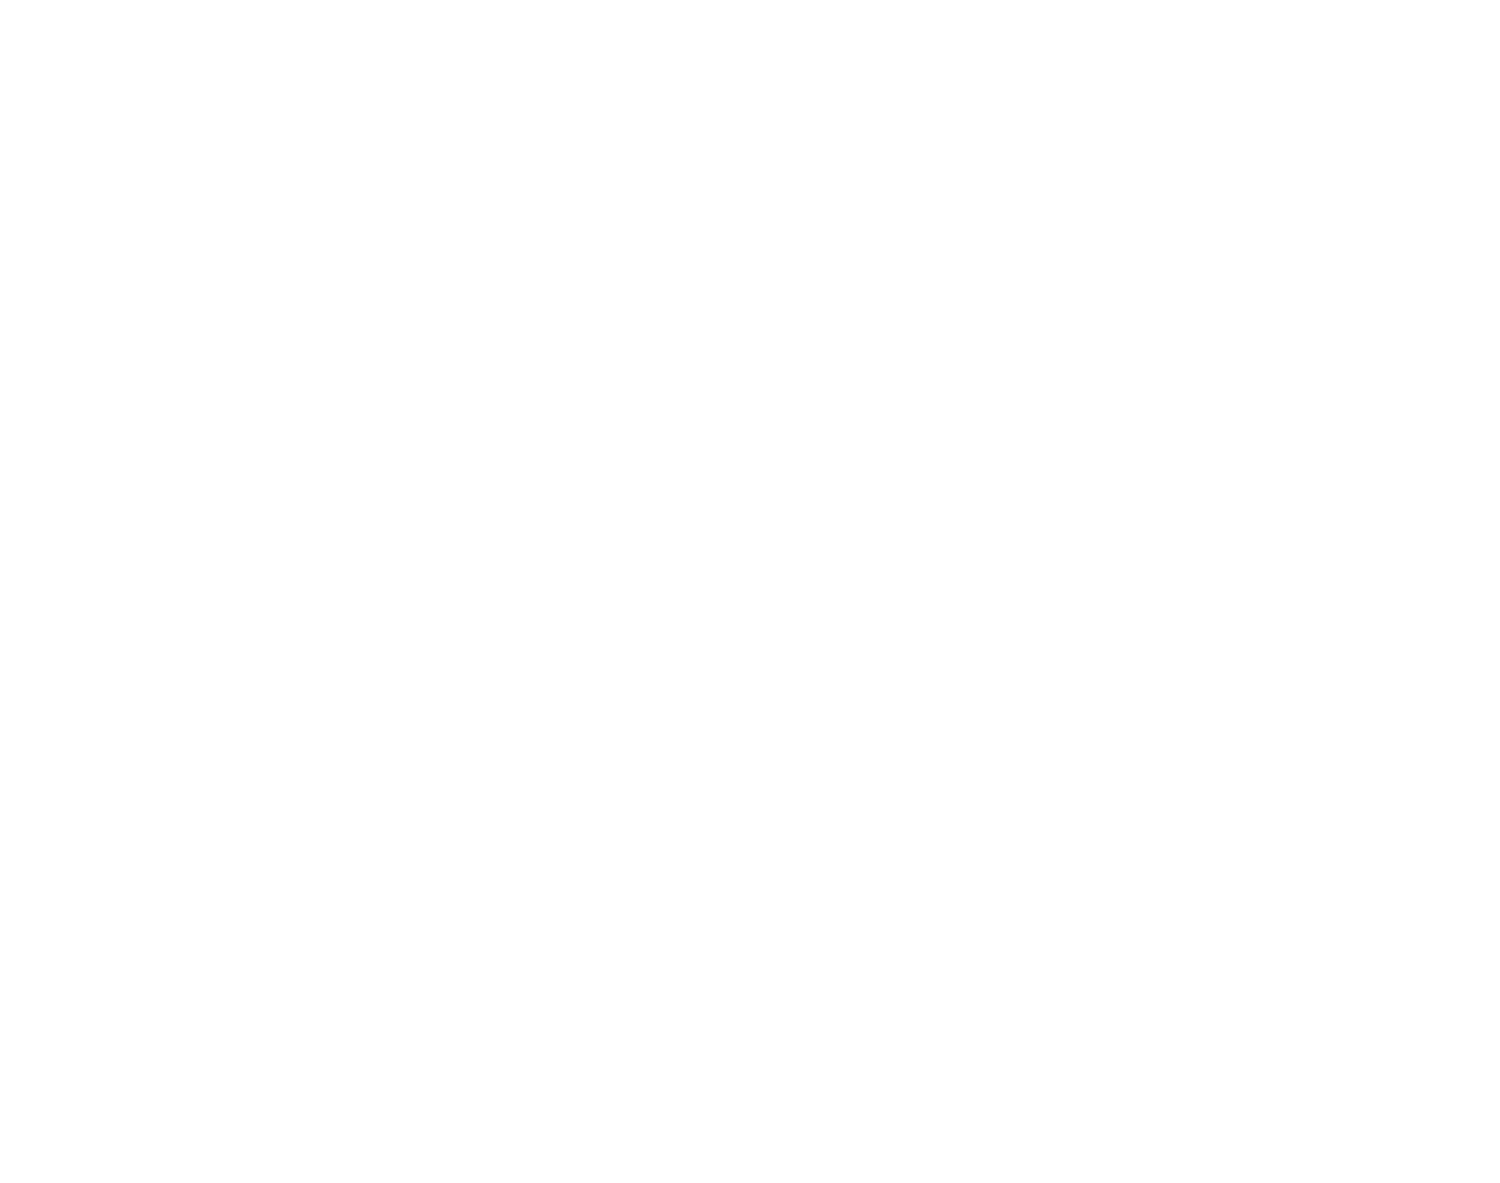 THE GOODS Theatre Company